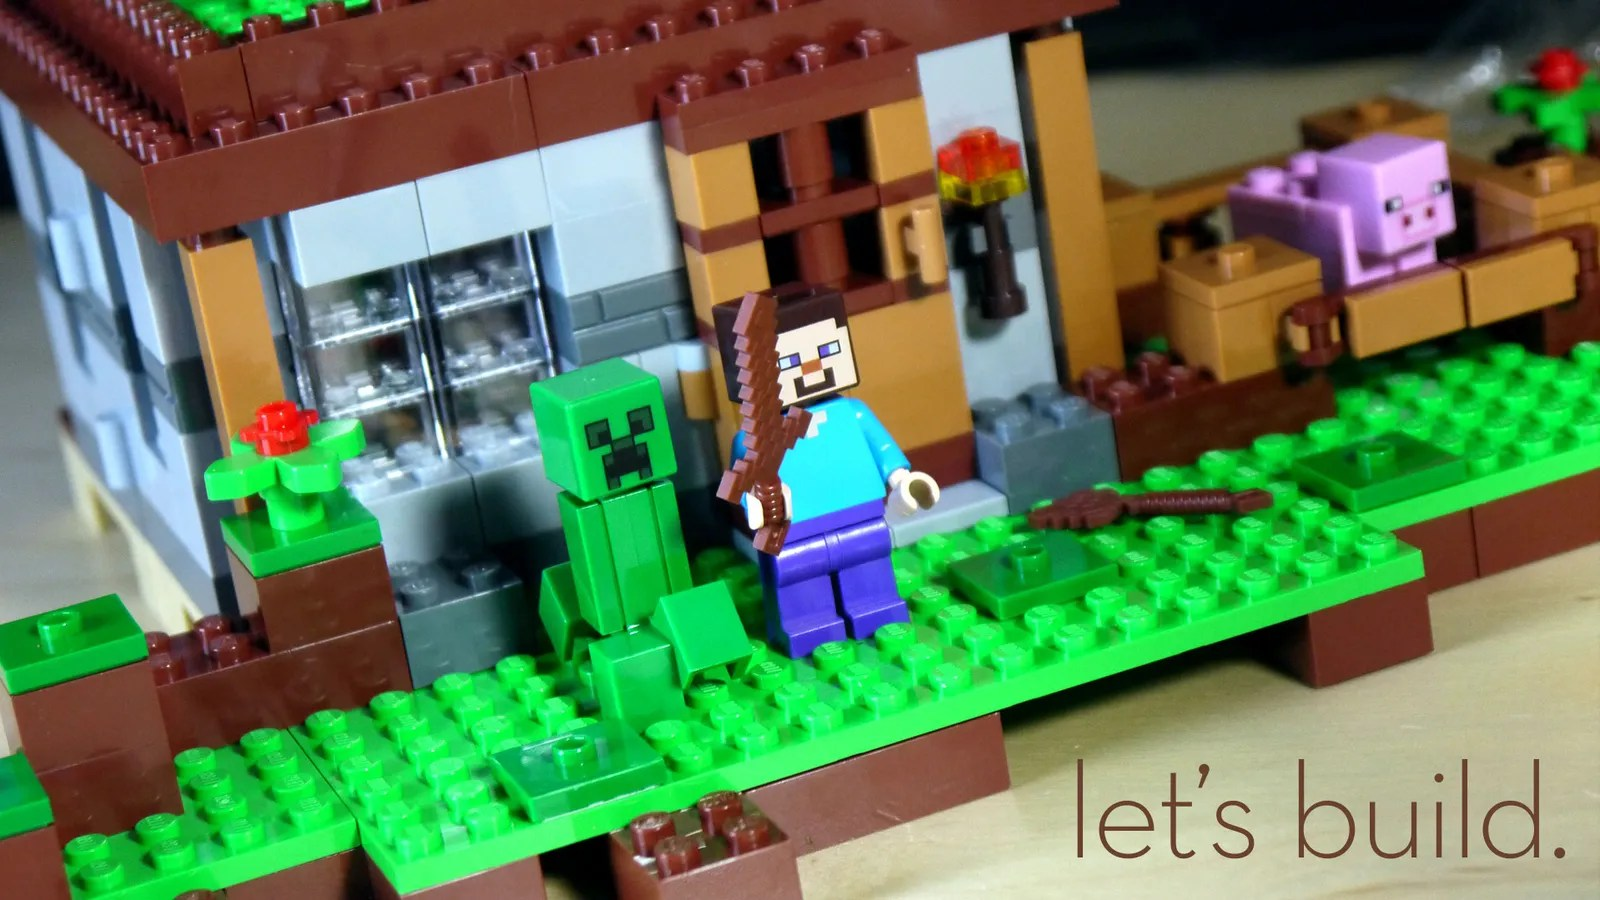 Building LEGO Minecraft Is Much More Fun At Minifig Scale